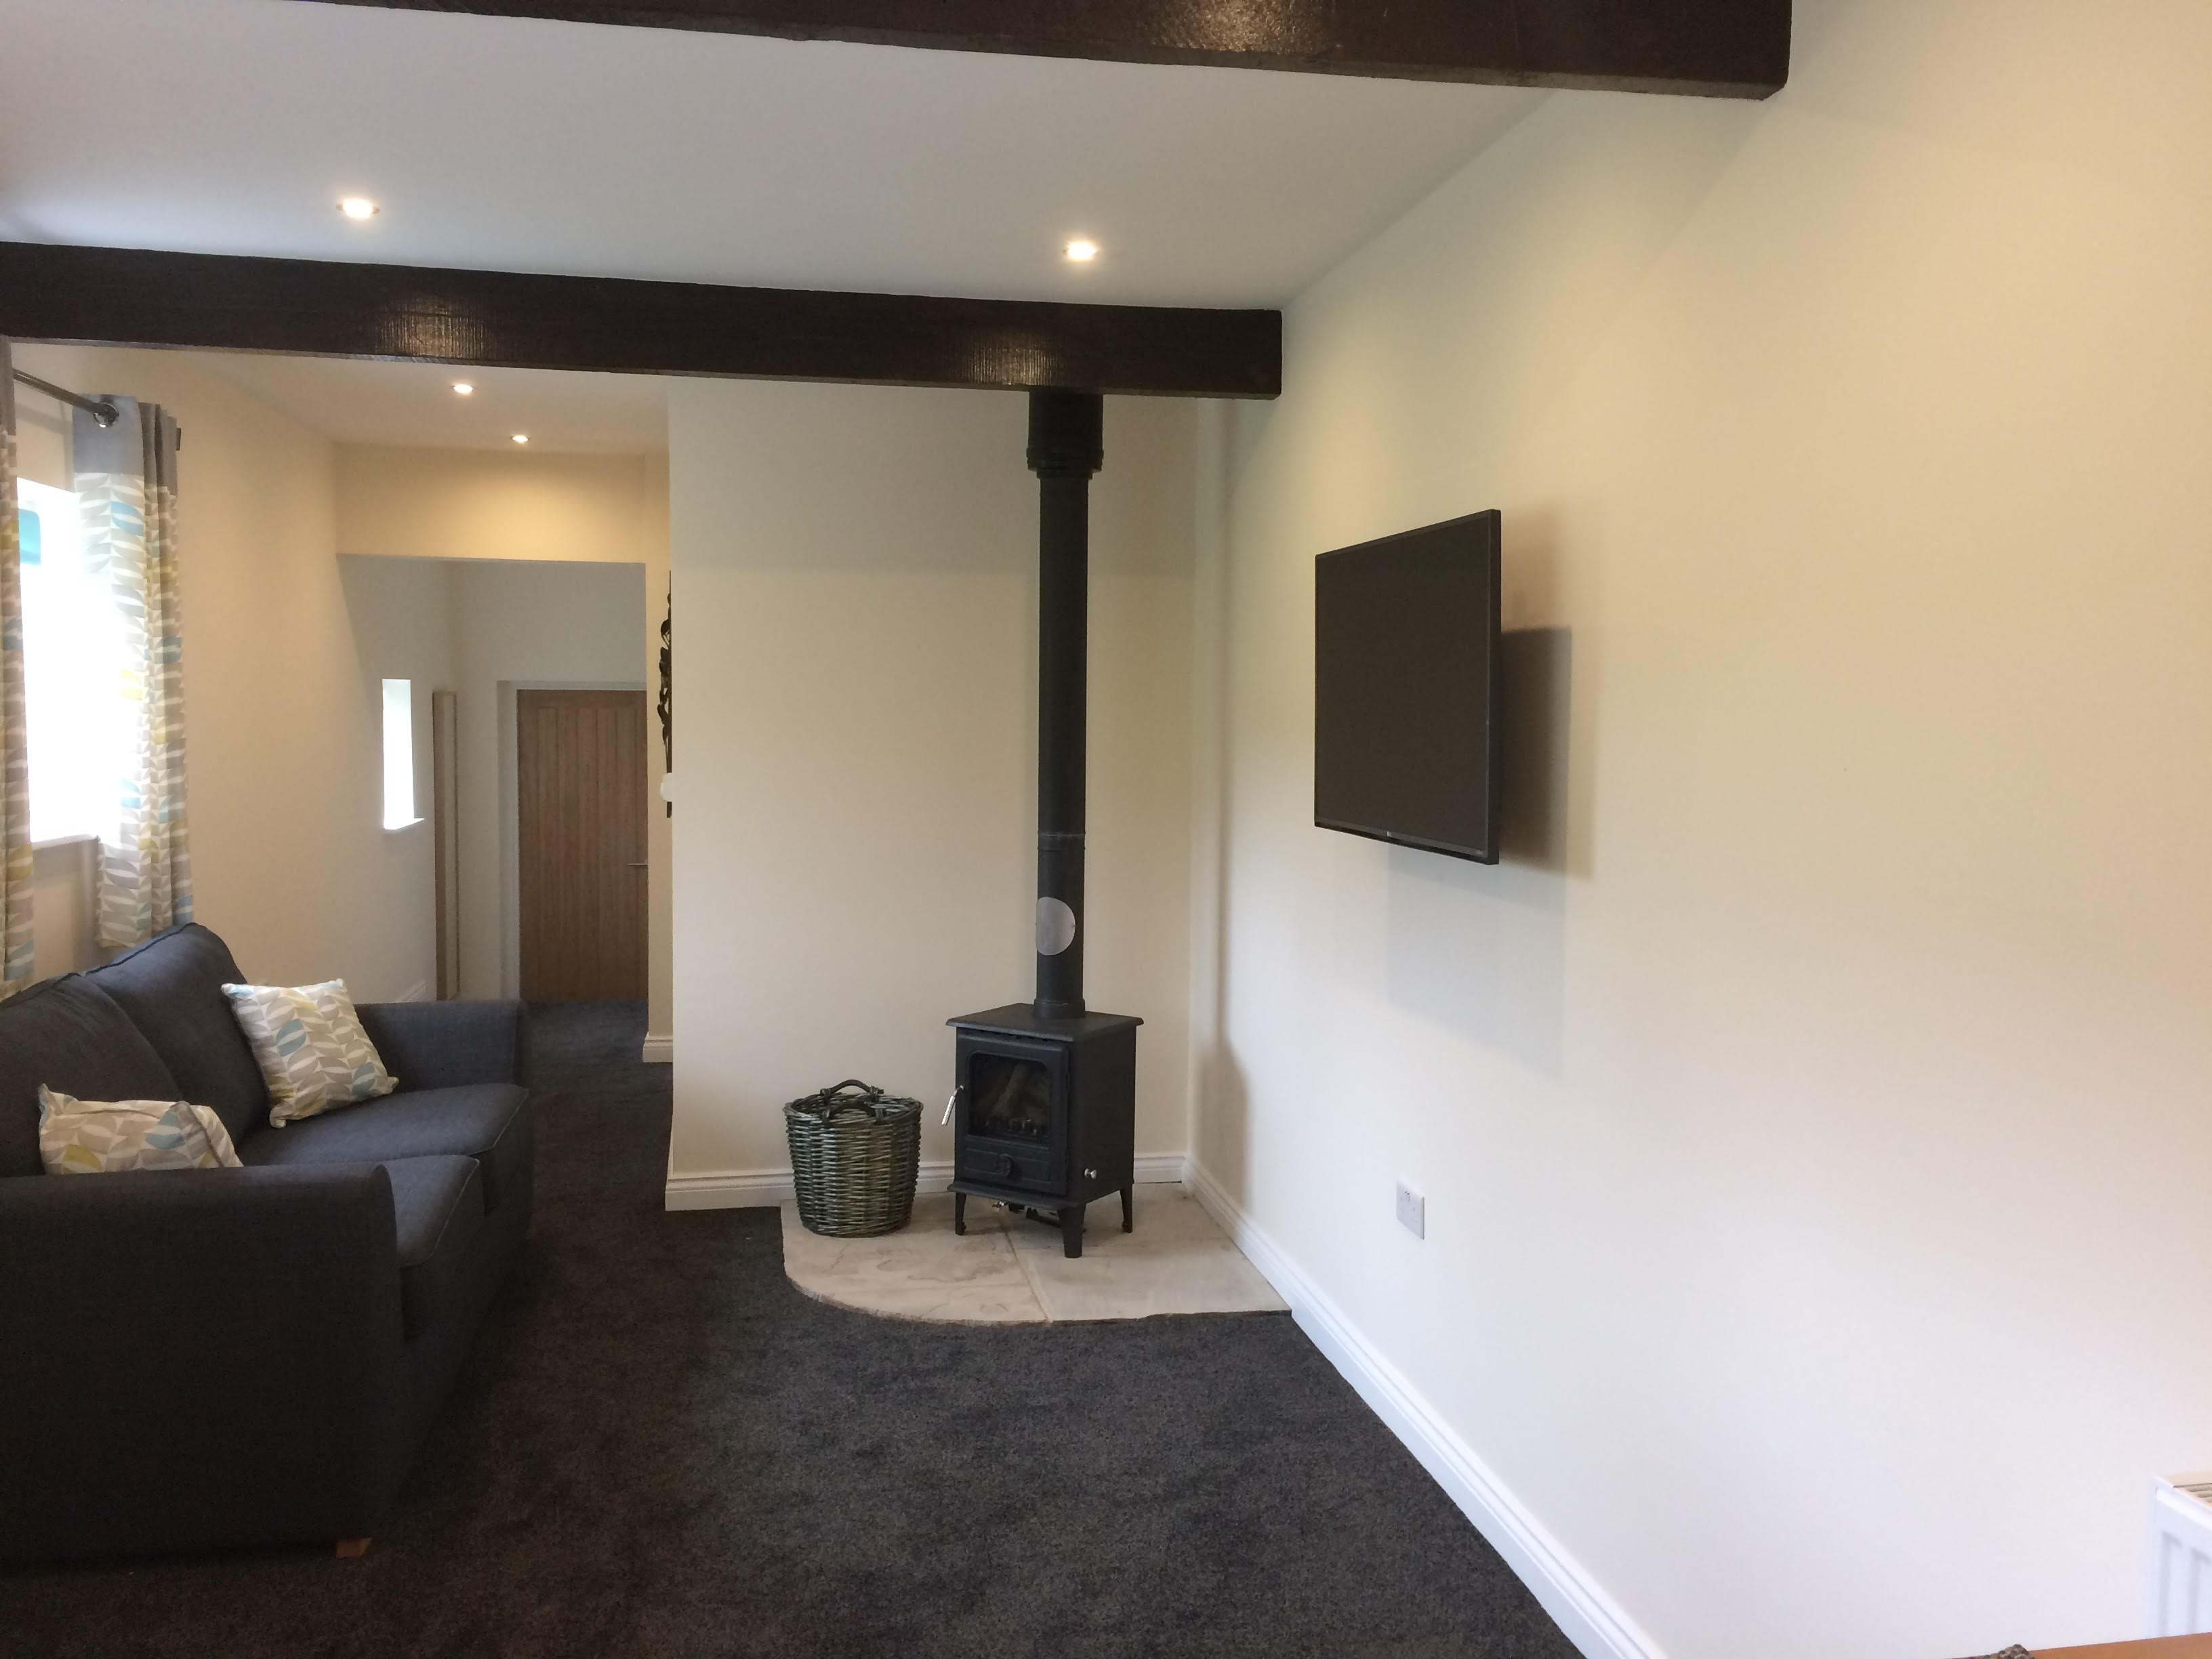 Living room area showing a comfy blue sofa, wood burning stove and HD Television